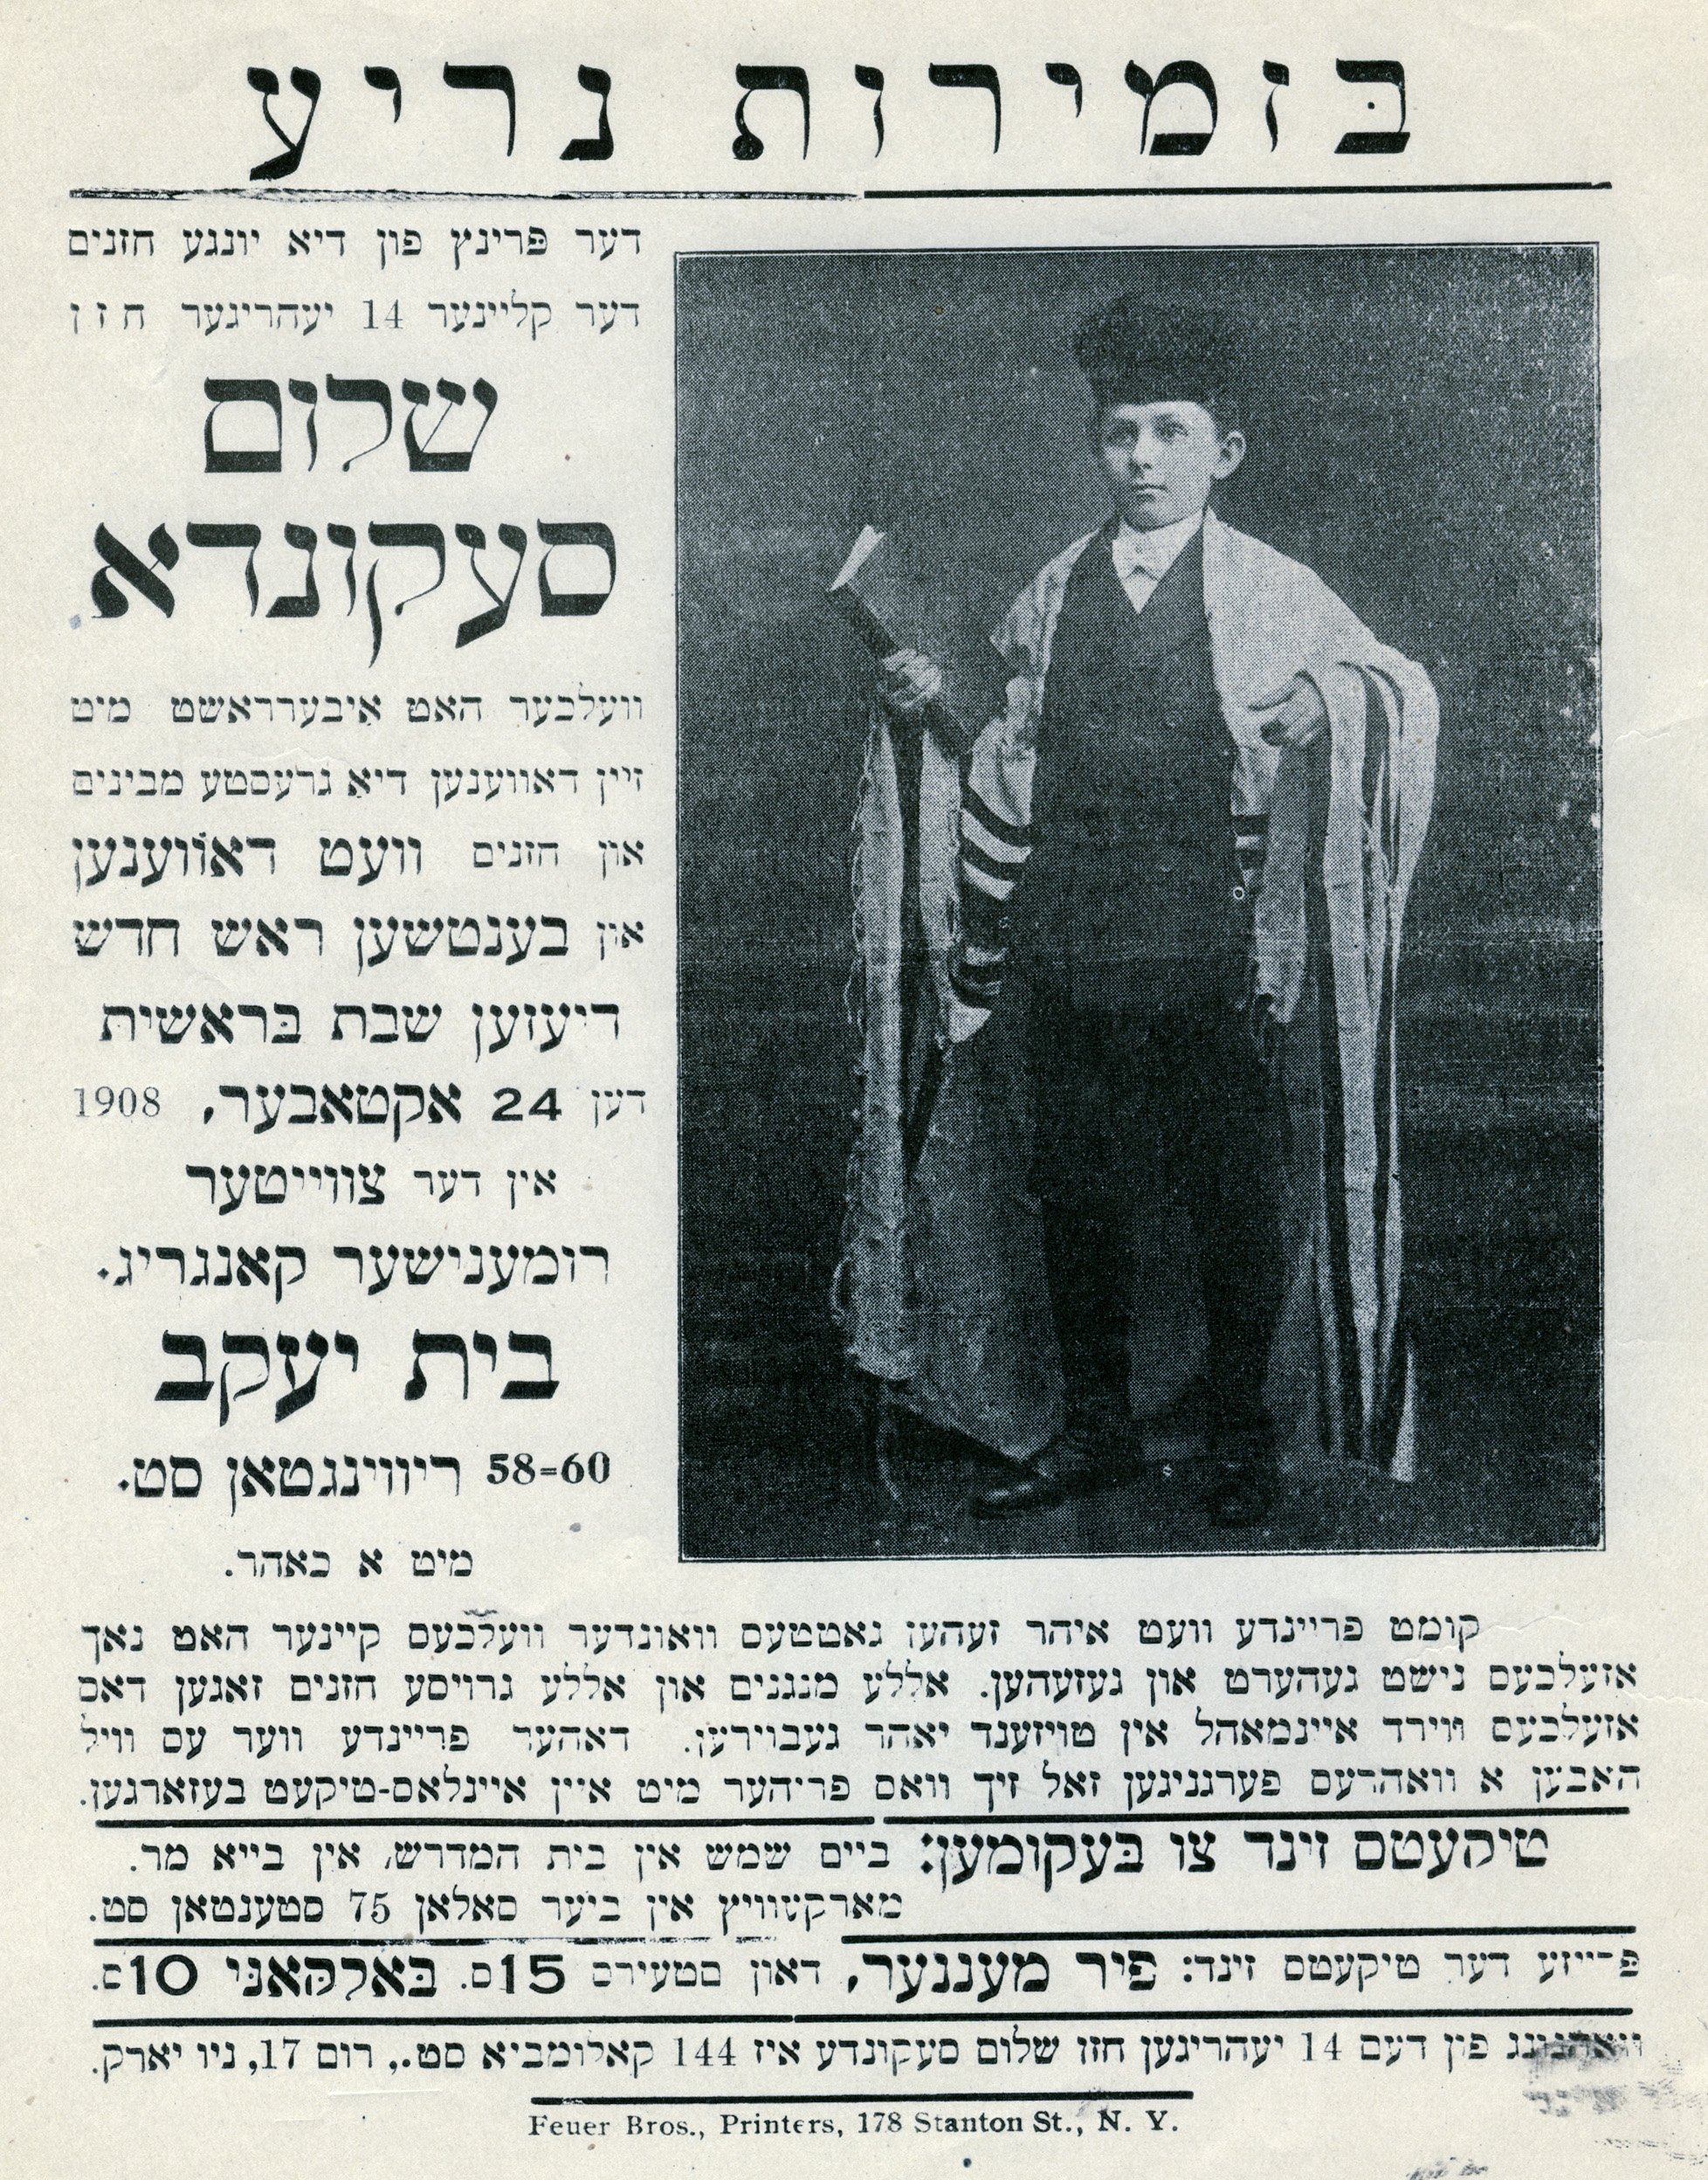 A Playbill advertising a cantorial performance by Sholom Secunda